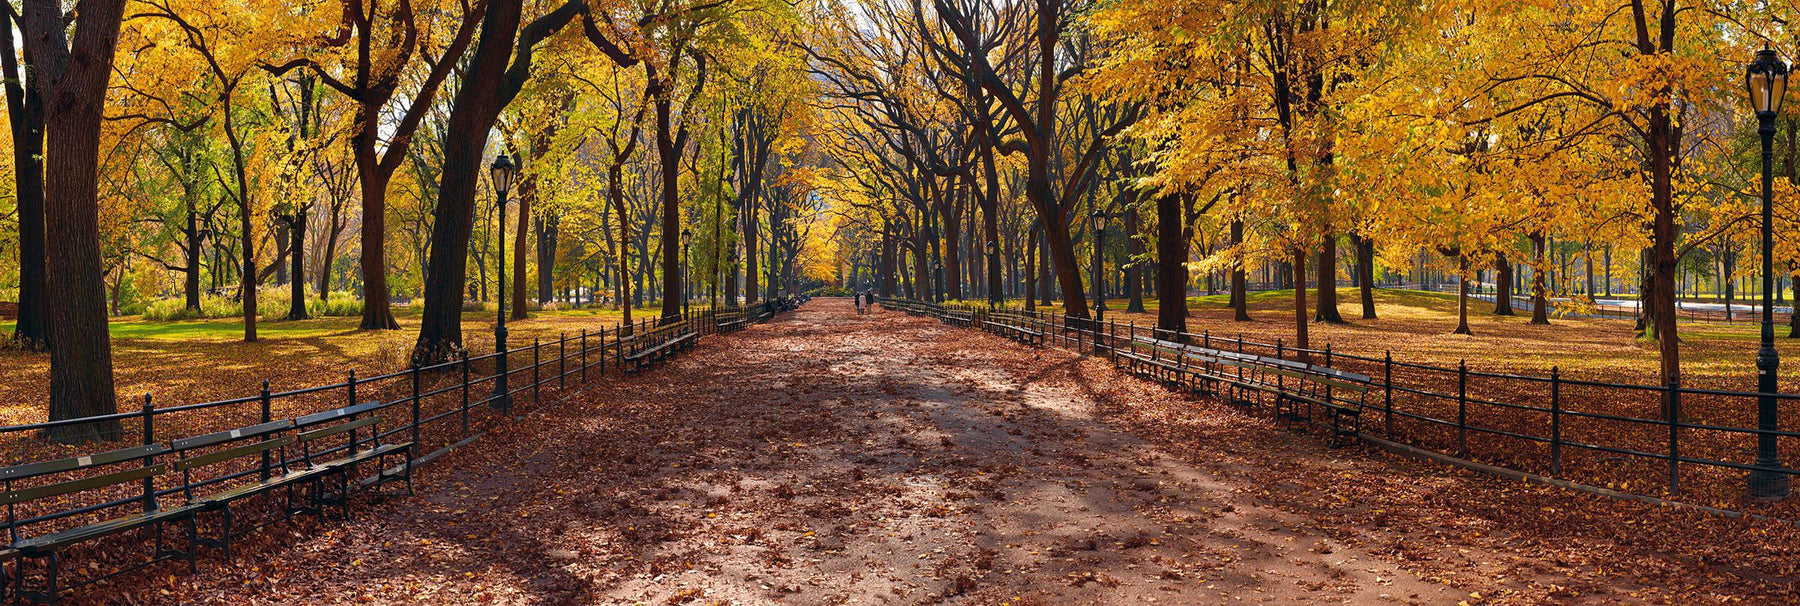 Yellow leaf trees along the iron rod fences and bench filled path of Central Park New York